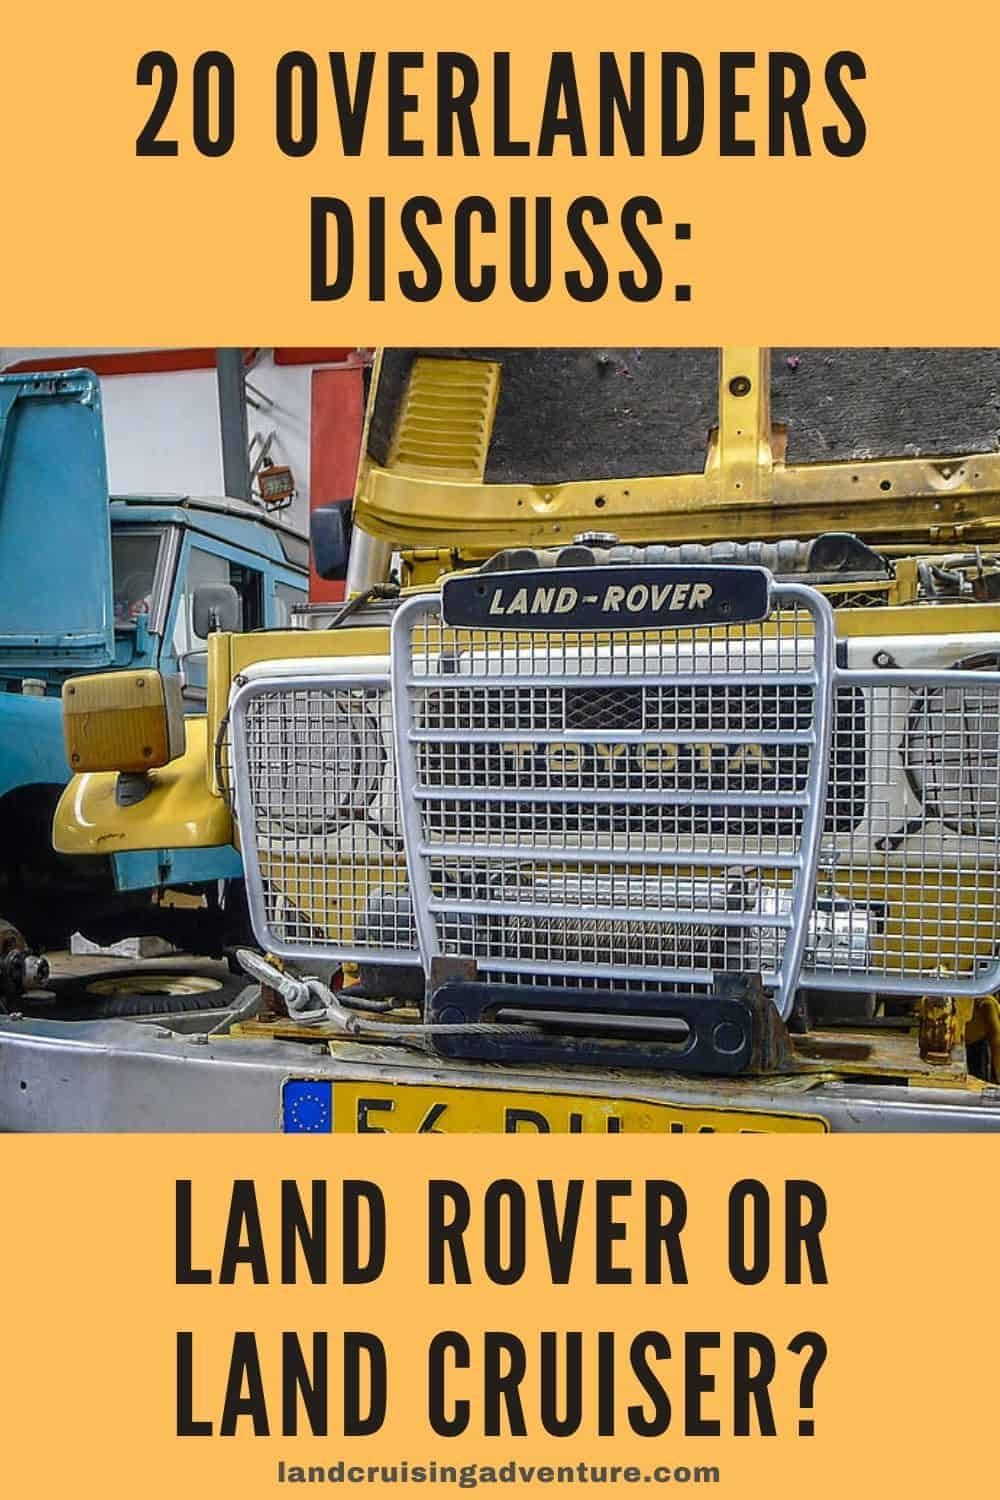 Land Rover Vs Land Cruiser Why Land Rover Coen Wubbels In 2020 Land Cruiser Parts Land Rover Land Cruiser